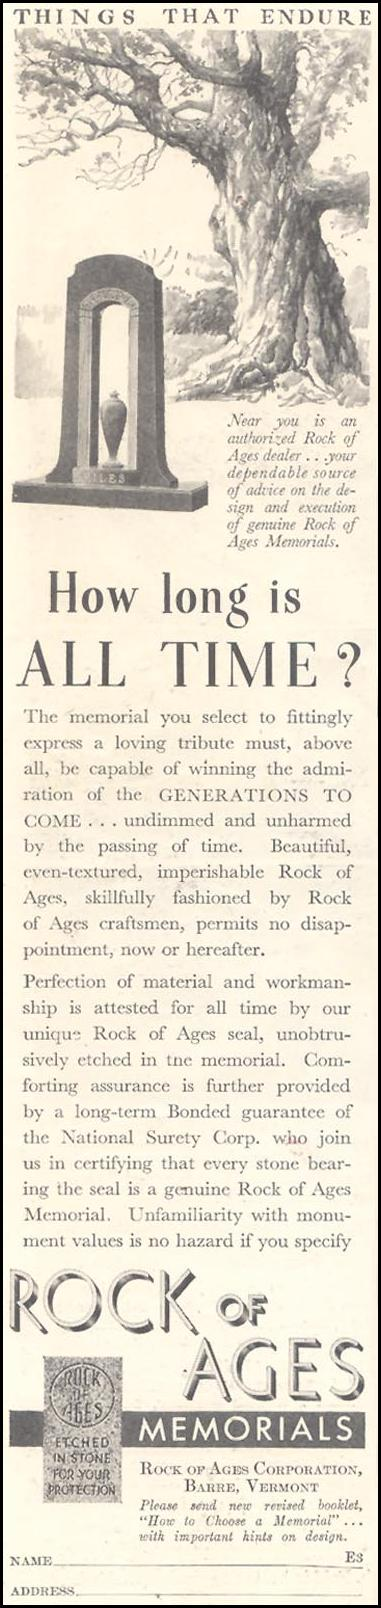 ROCK OF AGES MEMORIALS GOOD HOUSEKEEPING 03/01/1935 p. 196